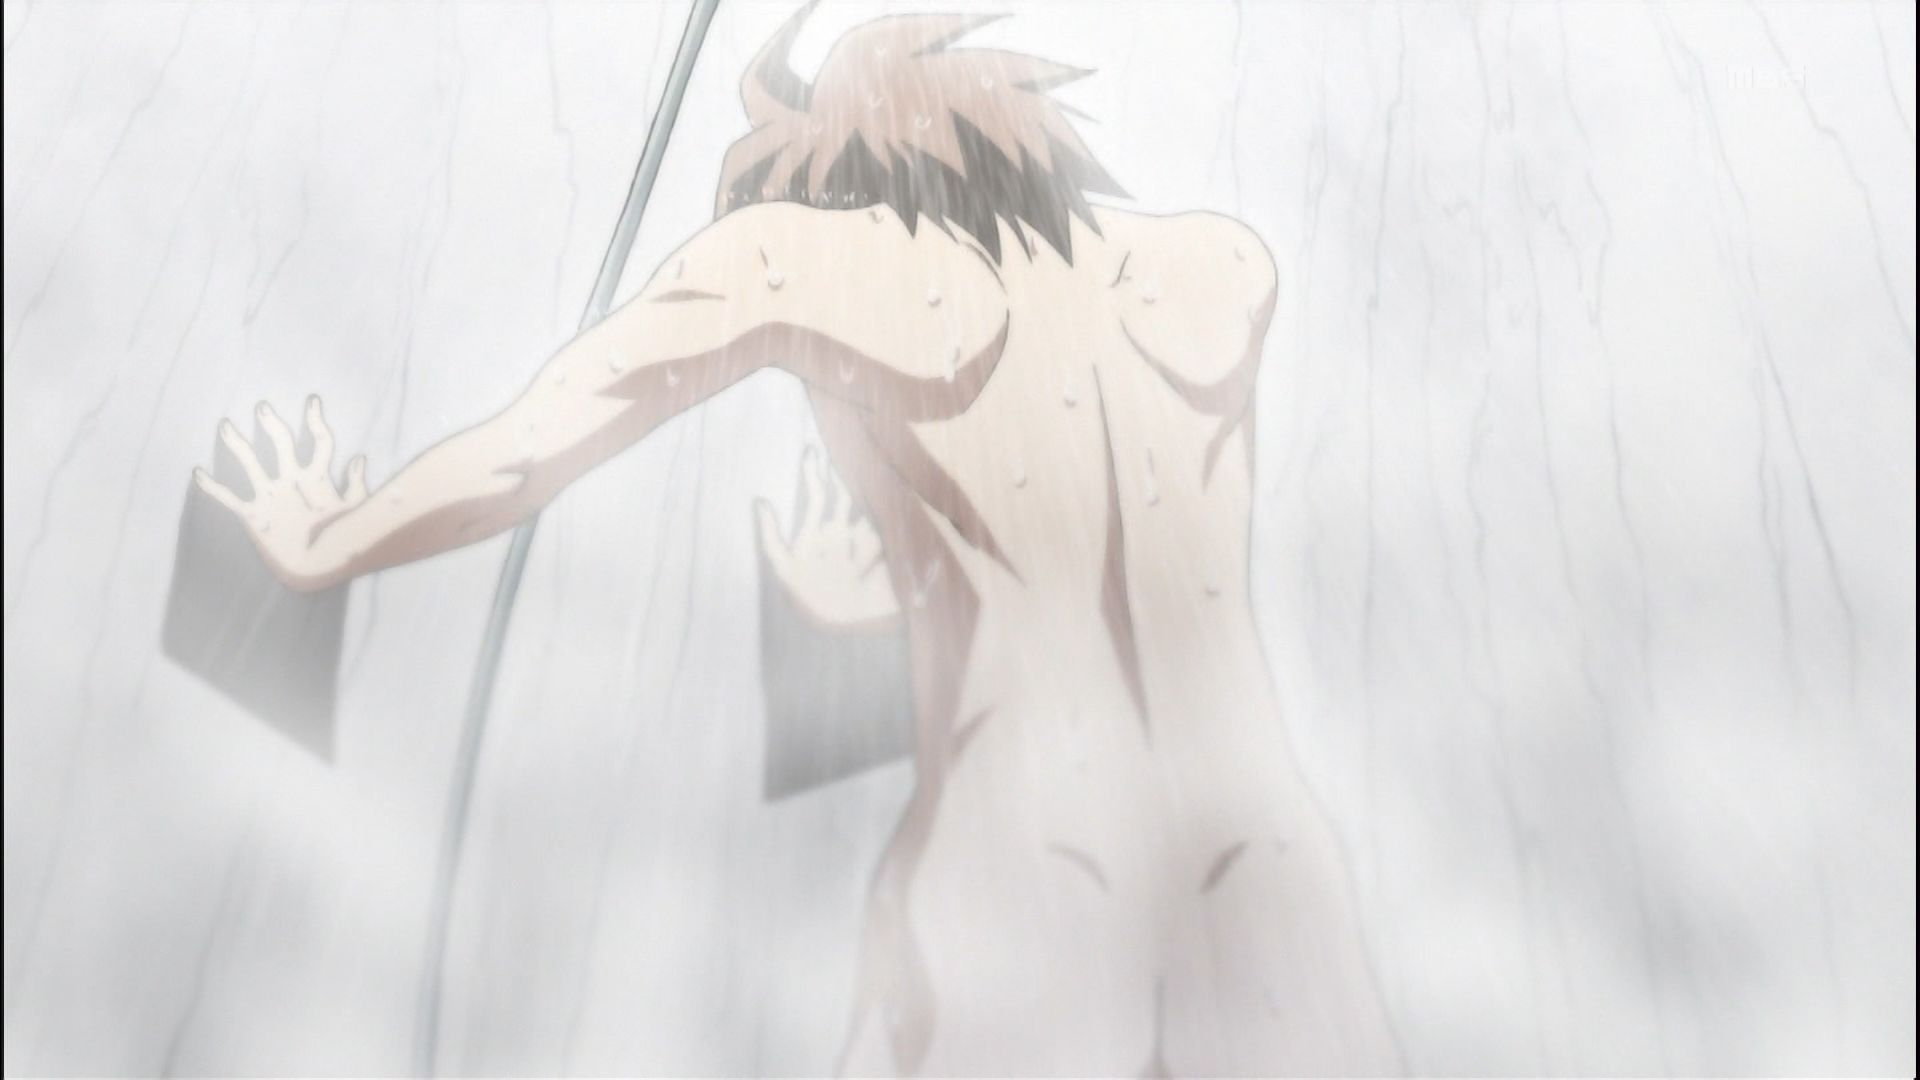 makoto naegi image - image gallery - marry your favorite character